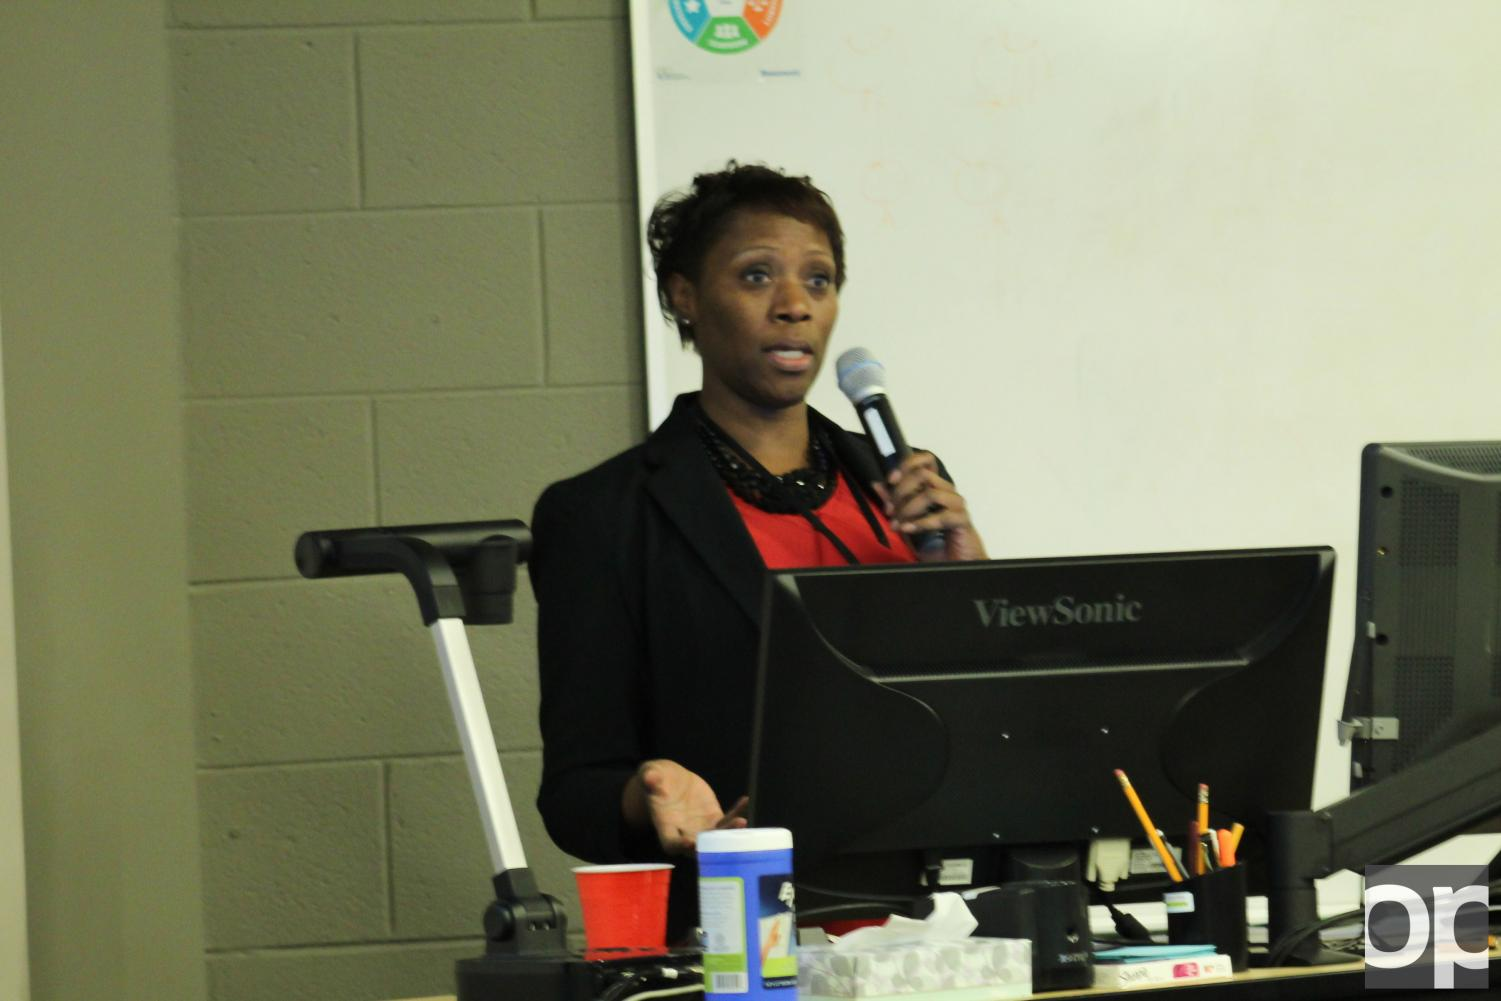 Speaker Michelle George delivers a presentation about HIV/AIDS and how many people are affected by it.